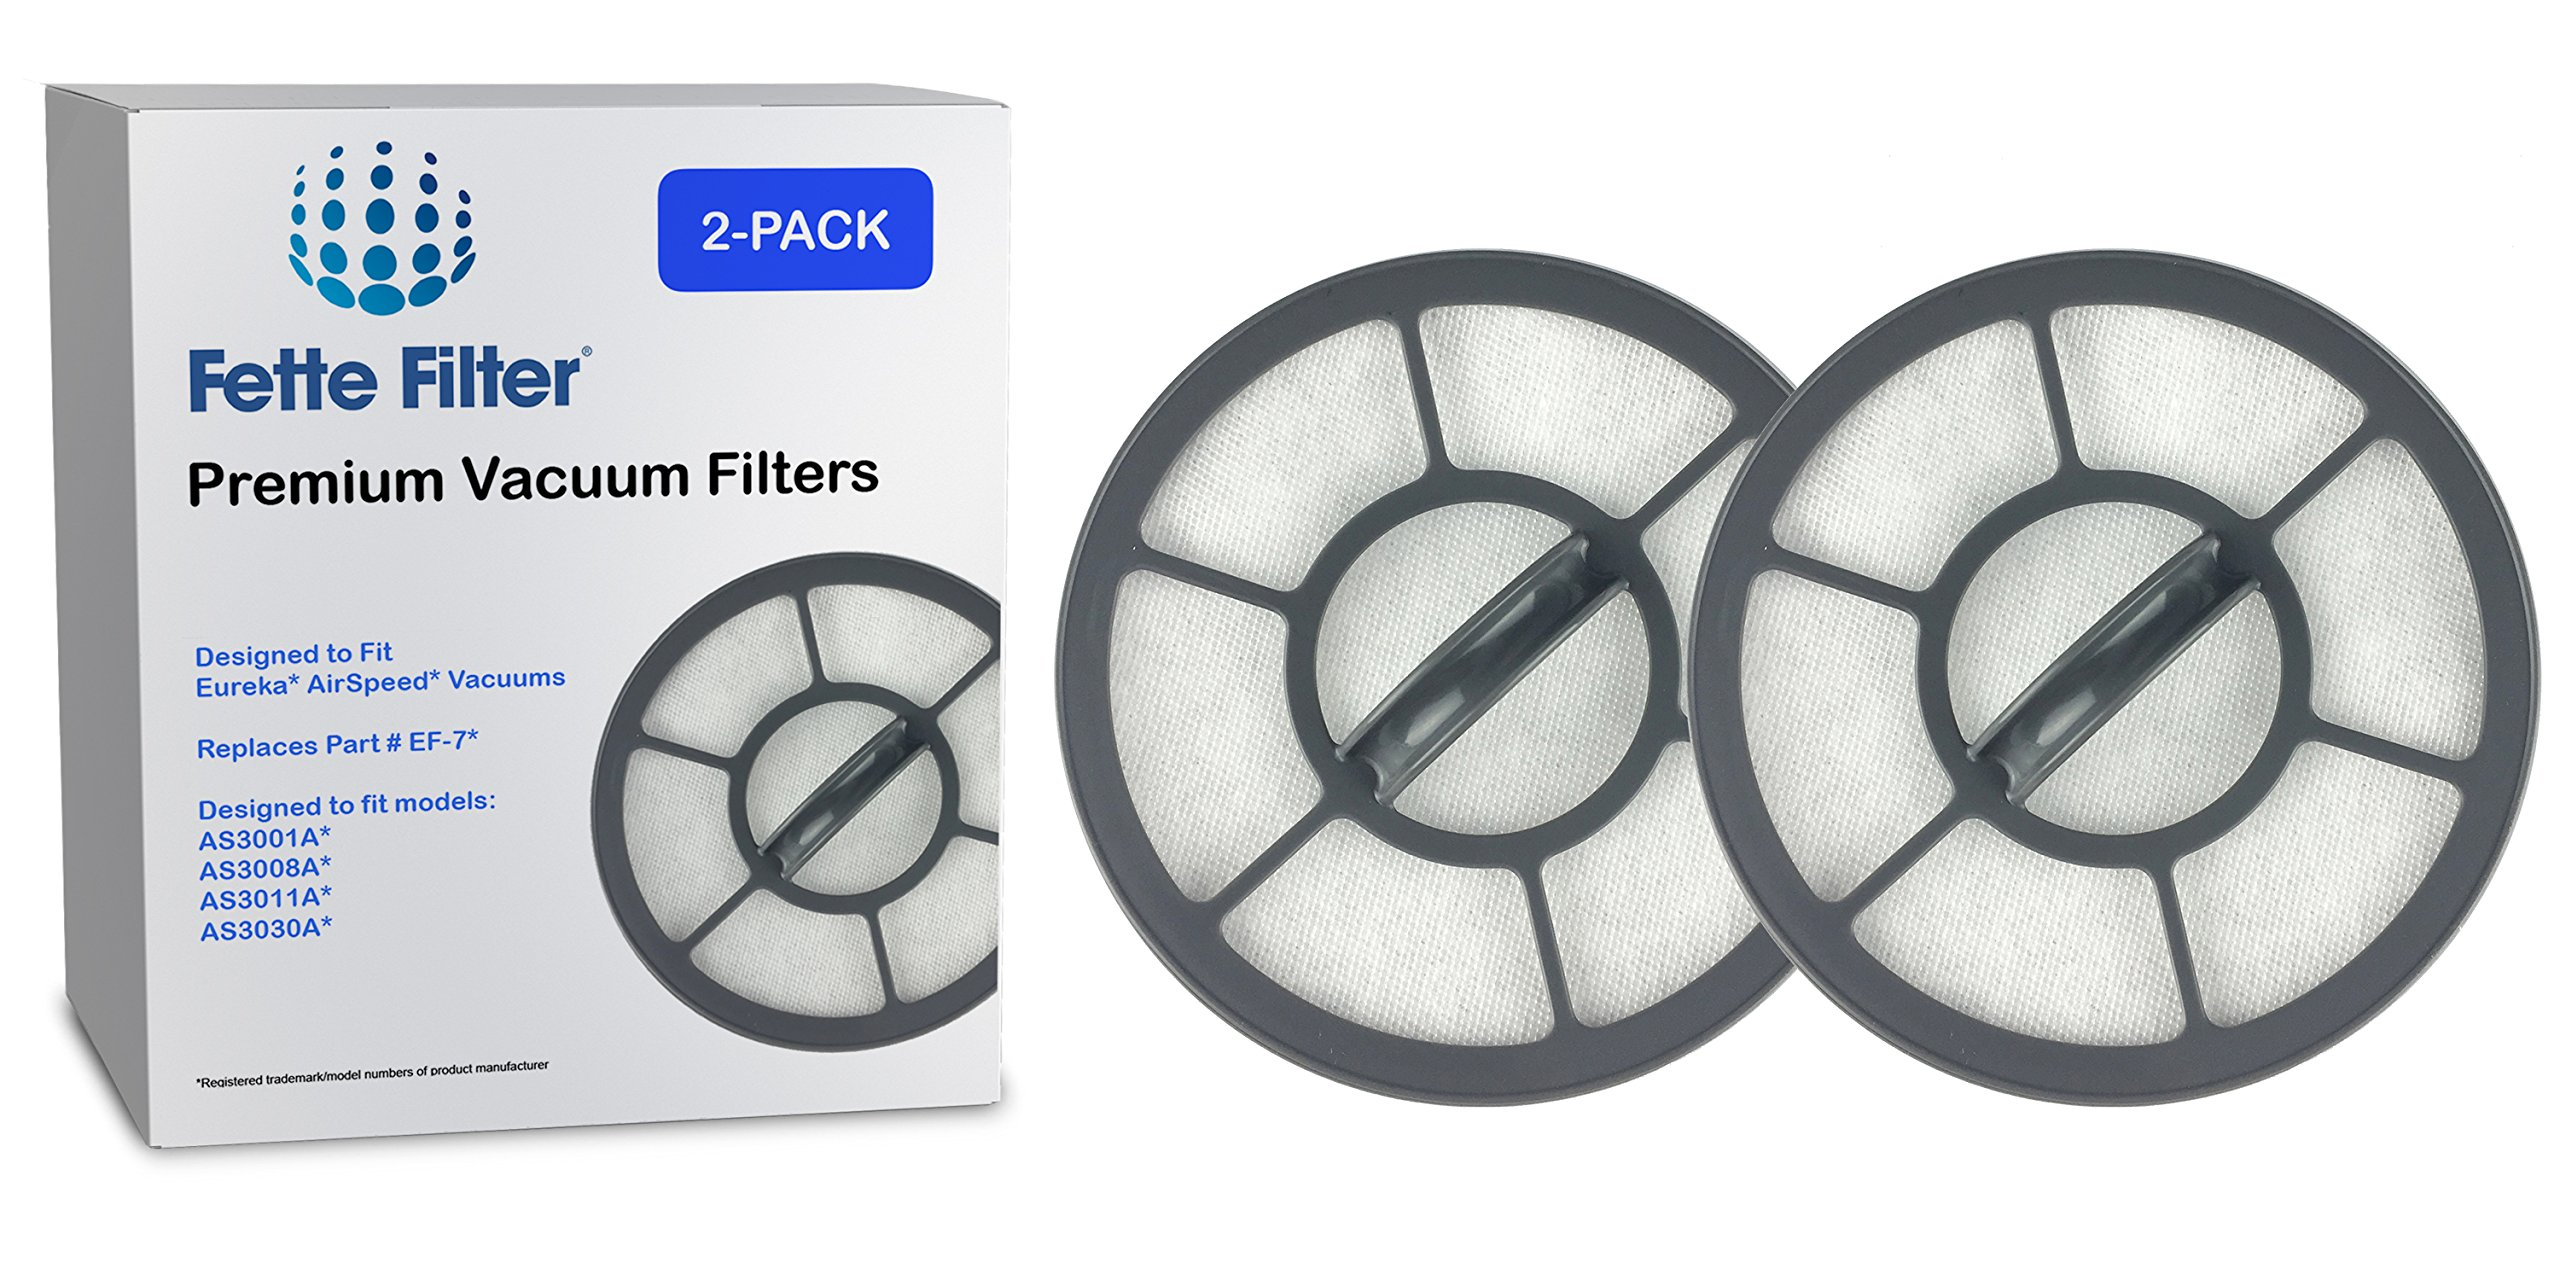 2-Pack - Eureka AirSpeed Compatible Exhaust Filter EF-7 For Models AS3001A, AS3008A, AS3011A, AS3030A. Replaces Part Number 091541